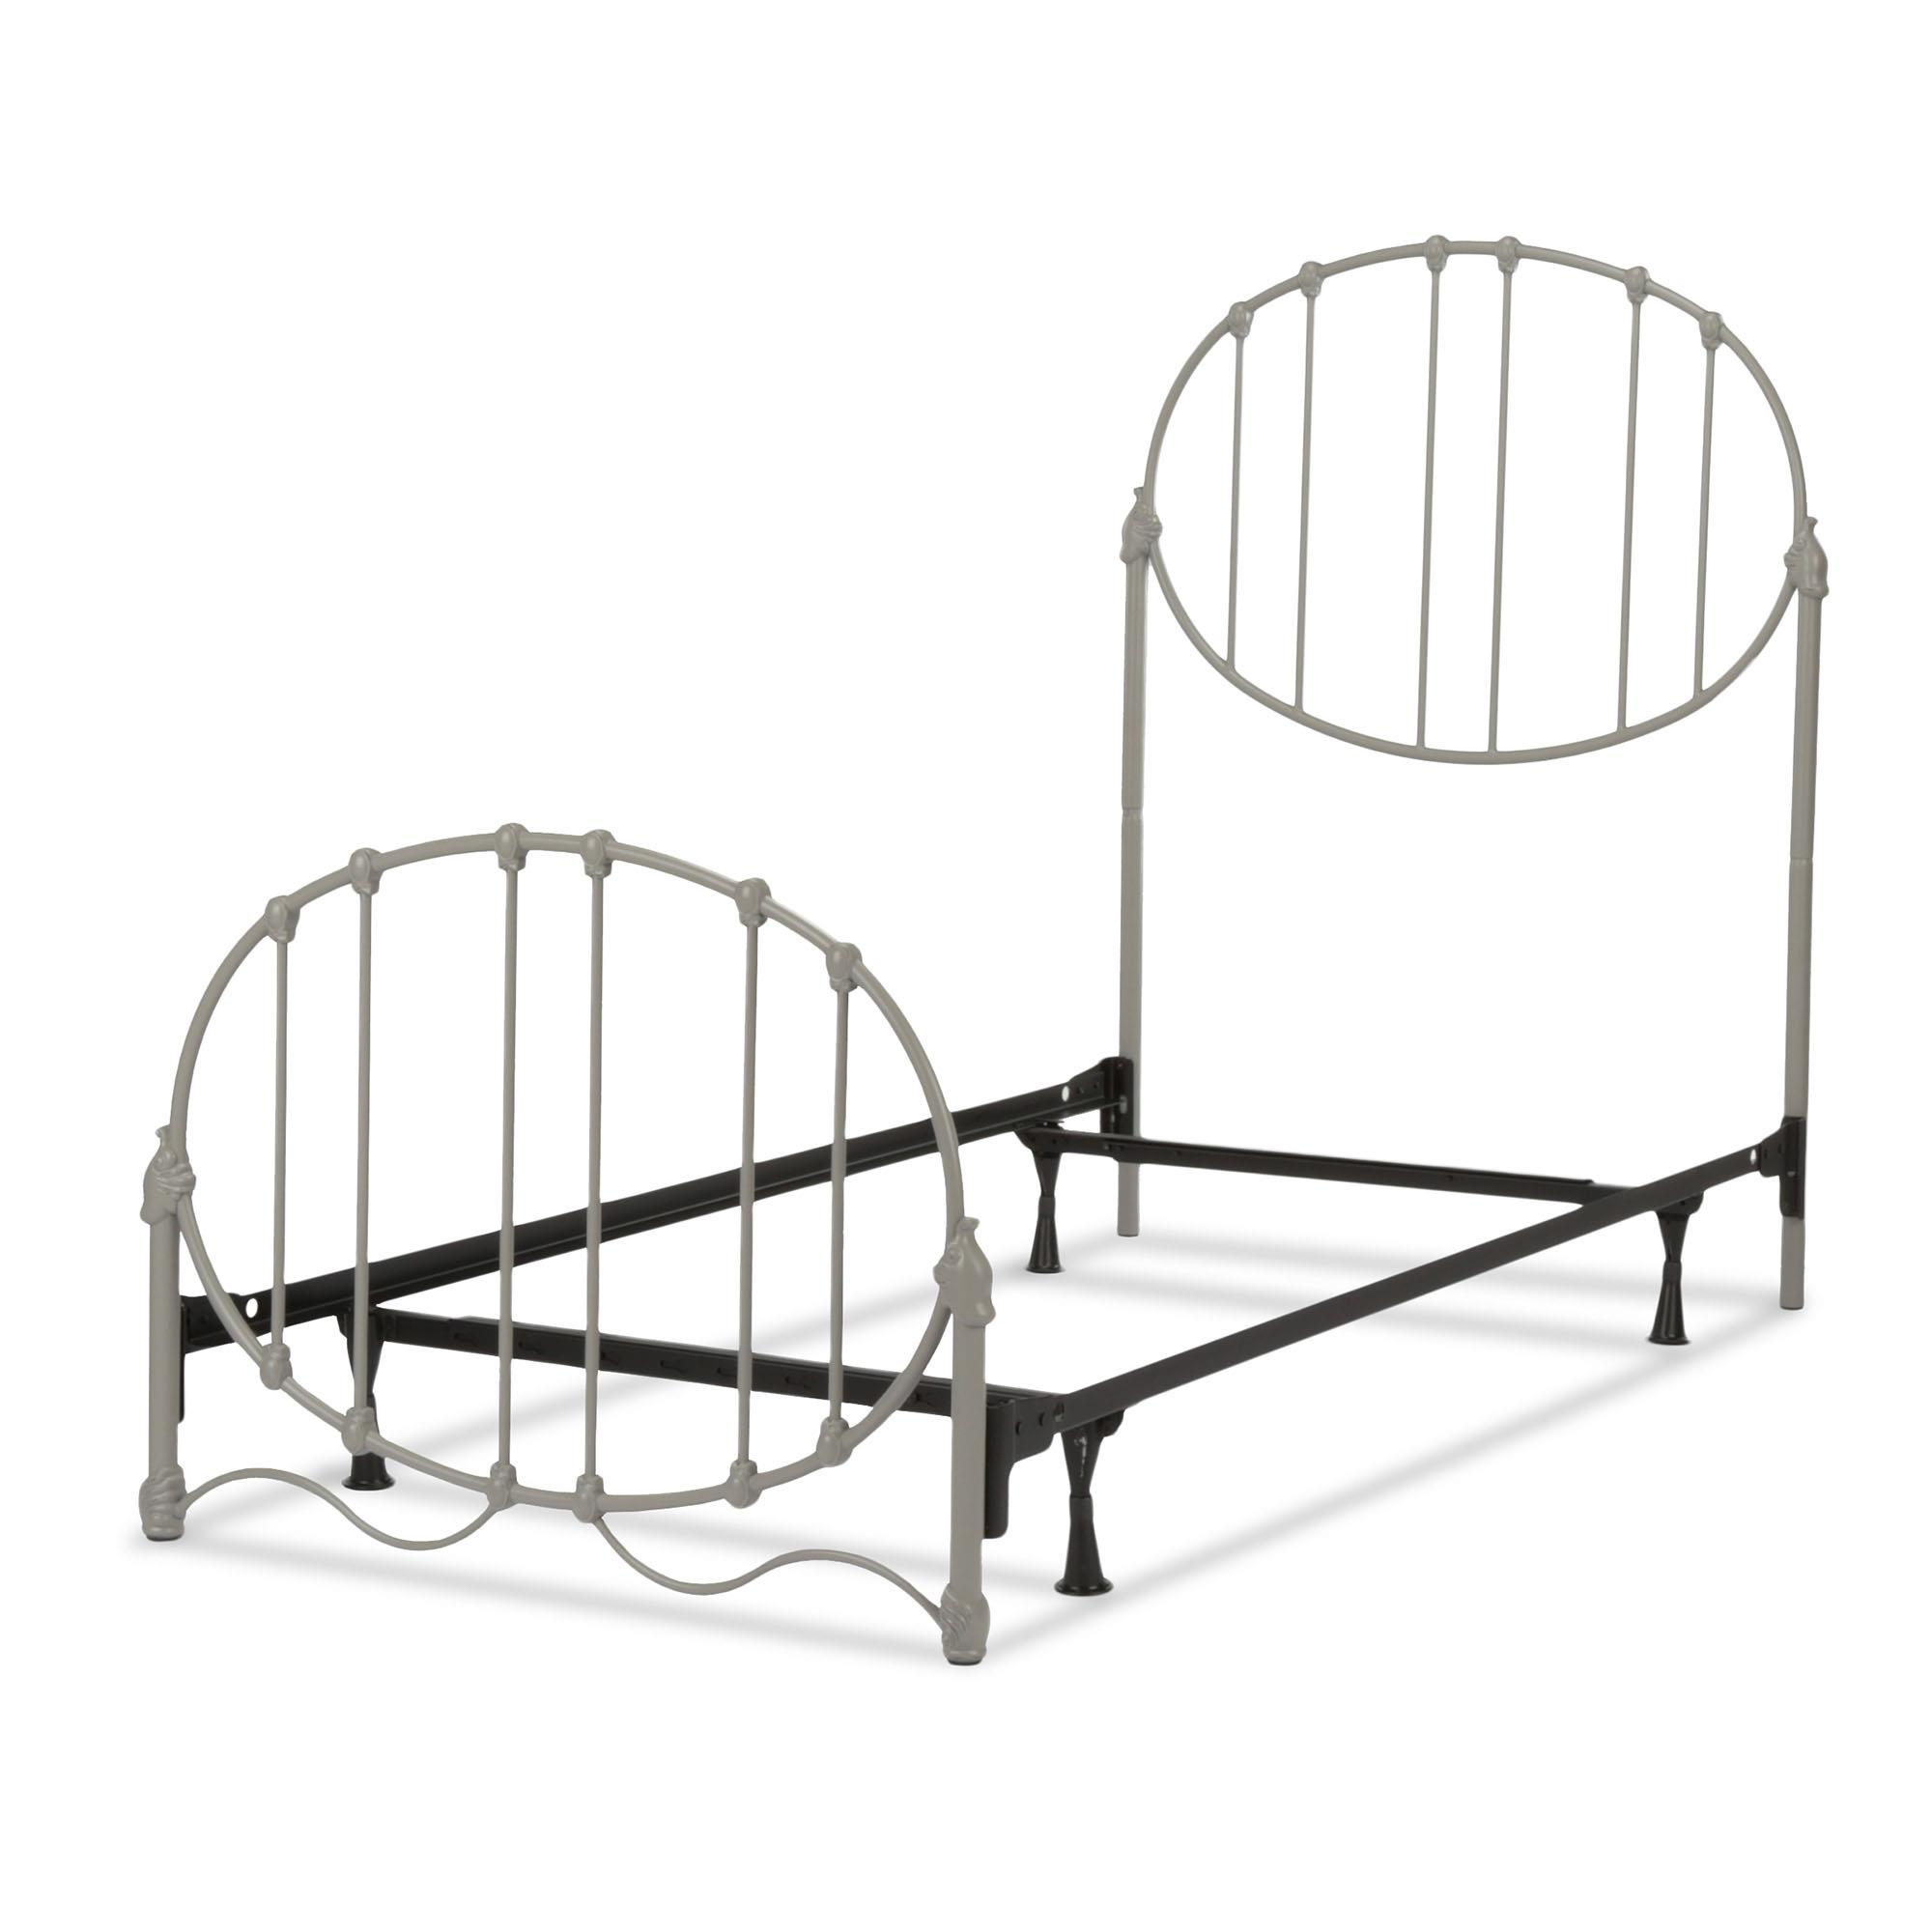 Emory Fashion Kids Complete Metal Bed And Steel Support